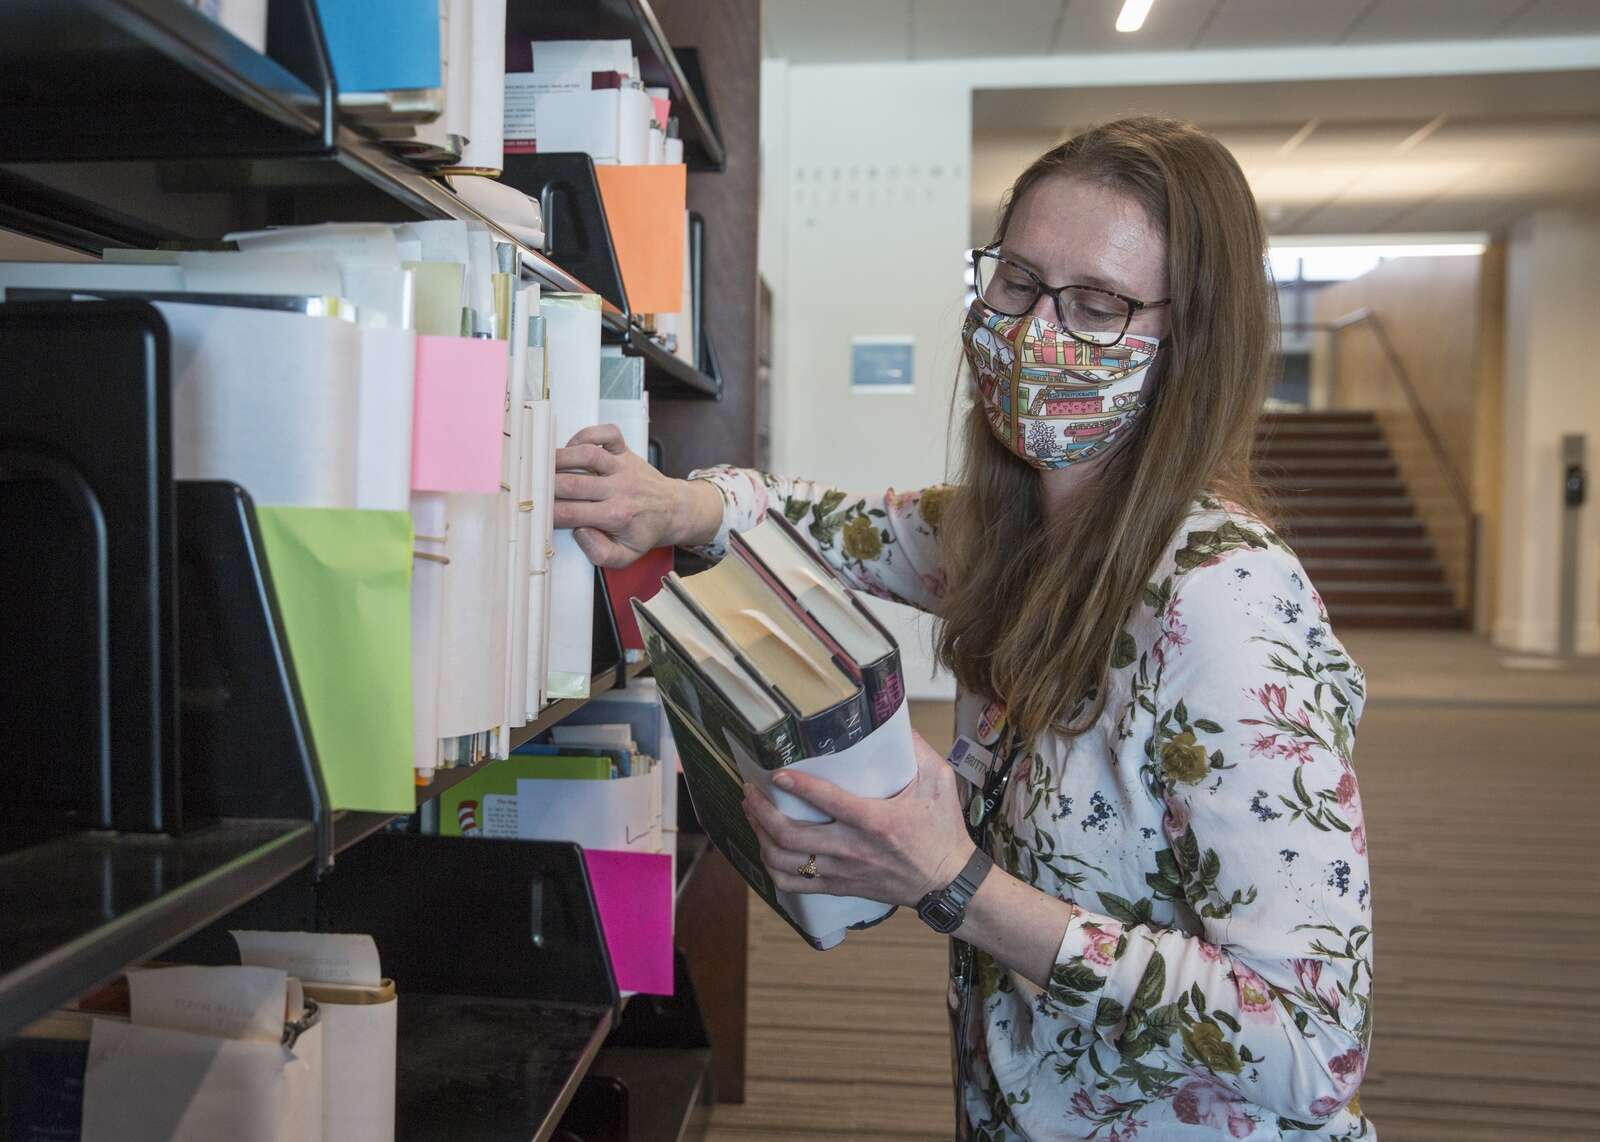 Park City Library reopens, another chapter in comeback from coronavirus